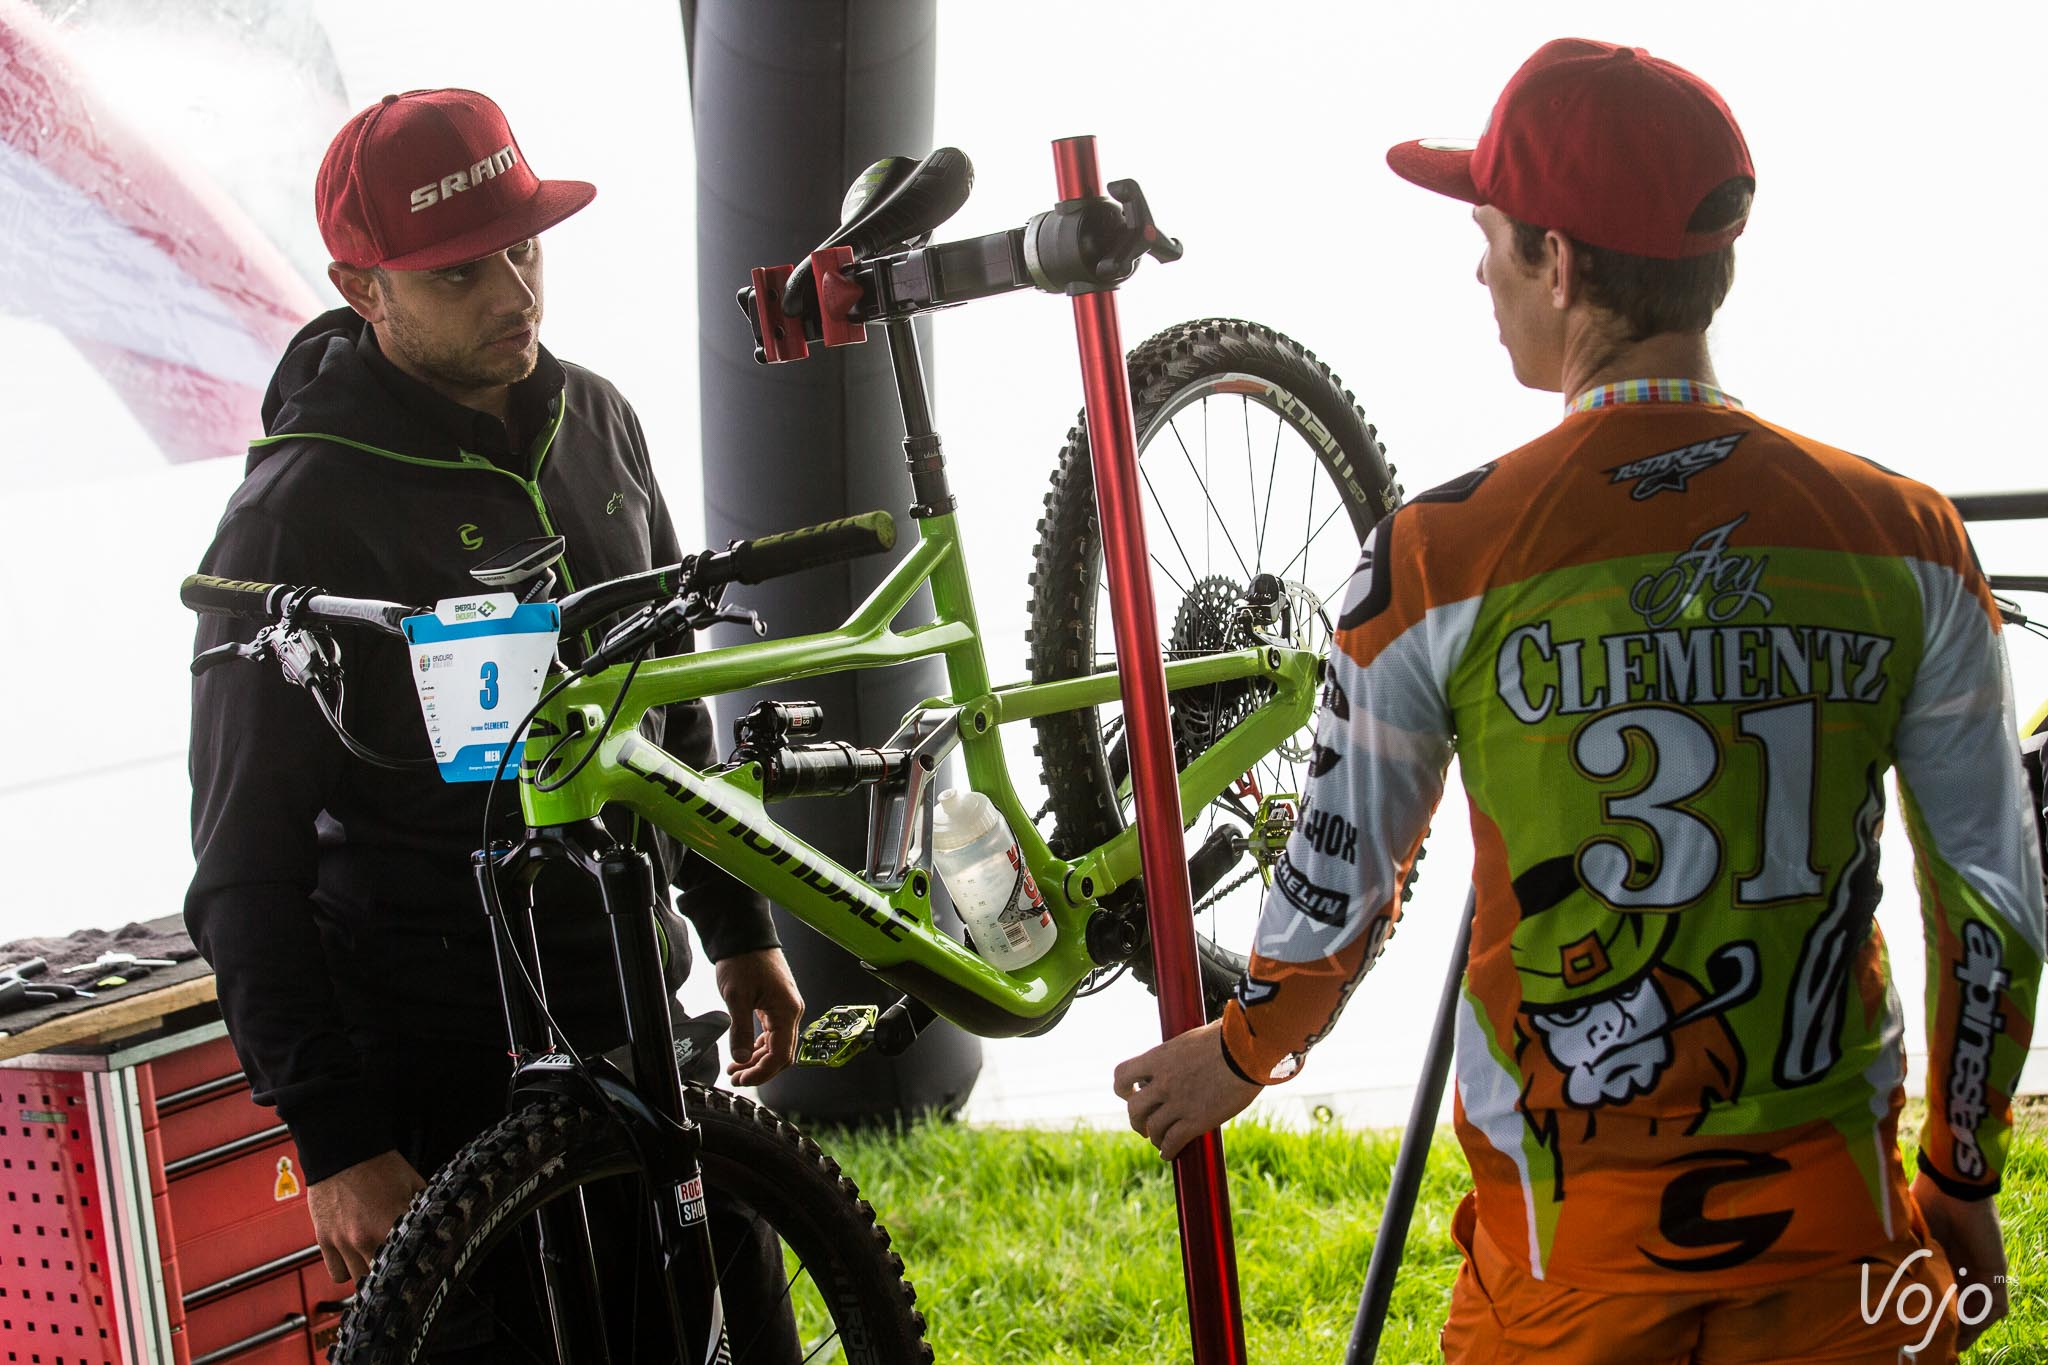 Cannondale_Jekyll_prototype_2017_Jerome_Clementz_Copyright_Reuiller_VojoMag-4